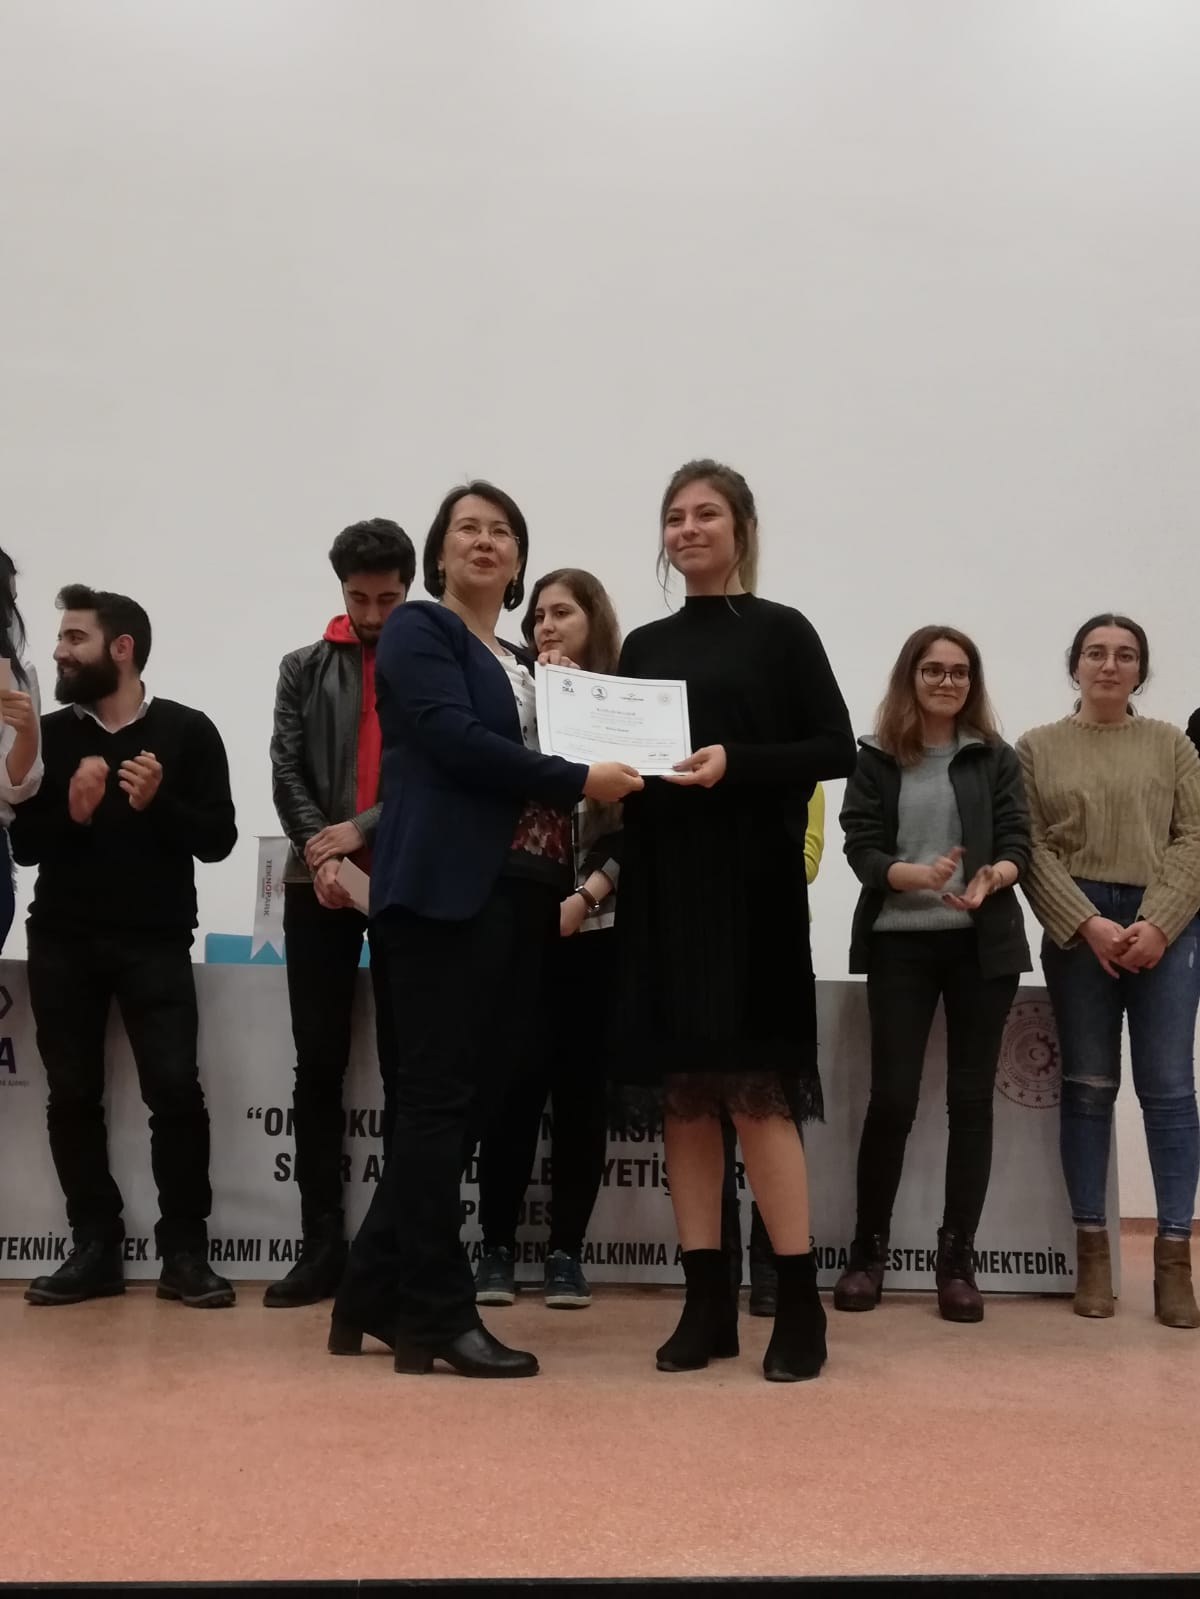 http://www.omu.edu.tr/sites/default/files/files/the_first_zero-waste_leaders_of_omu_receive_their_certificates/fcfb30dc-78fc-43f8-85e4-430ac4ba6b15.jpg